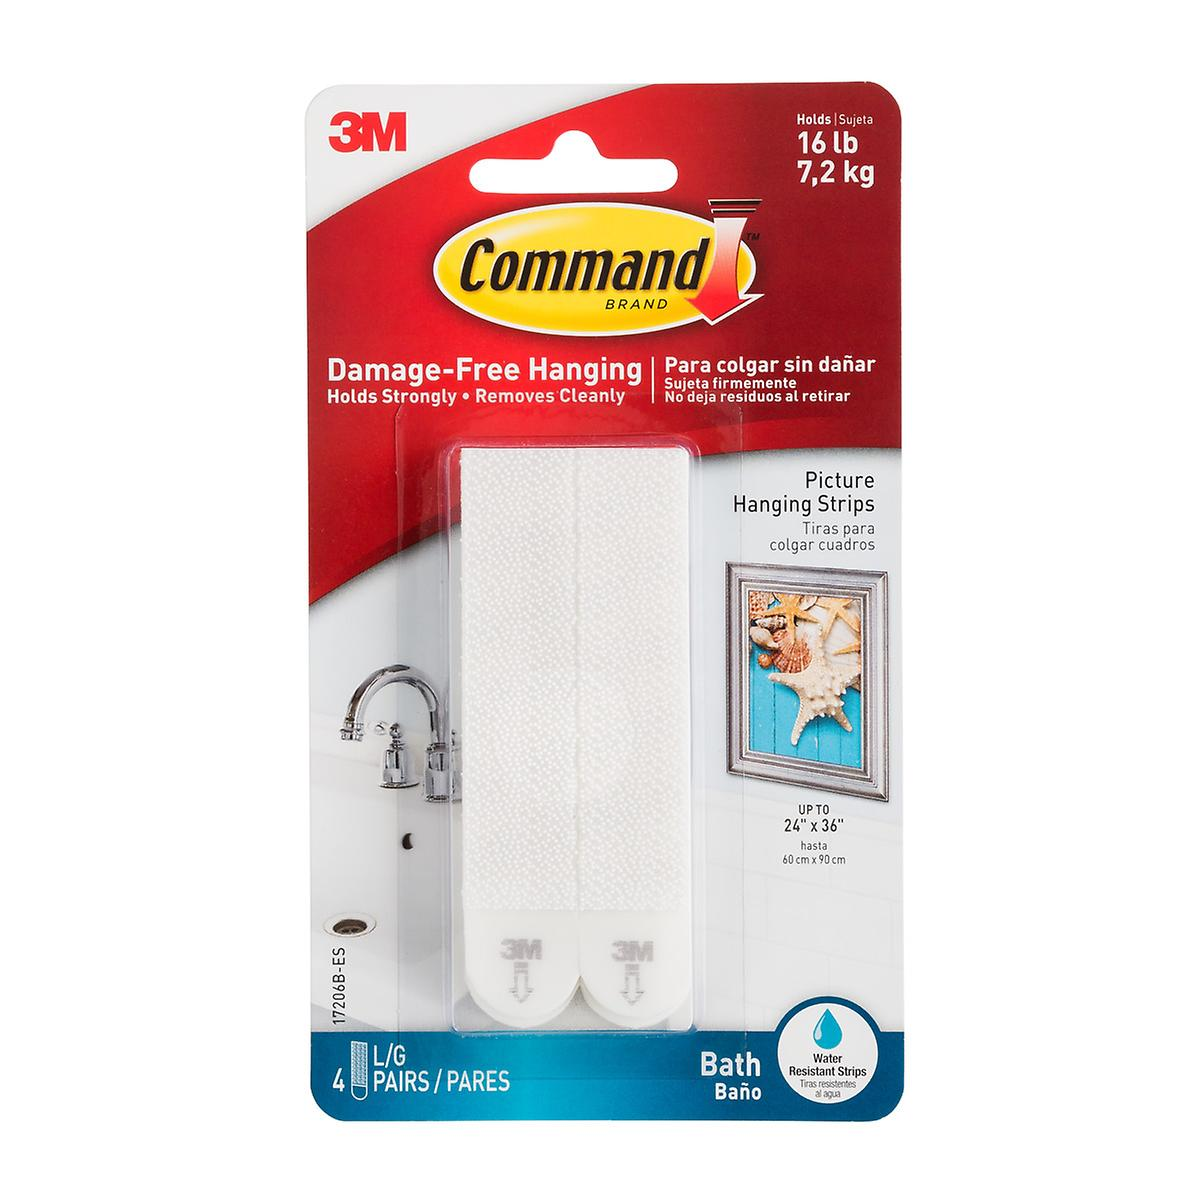 3M Command Bath Picture Hanging Strips